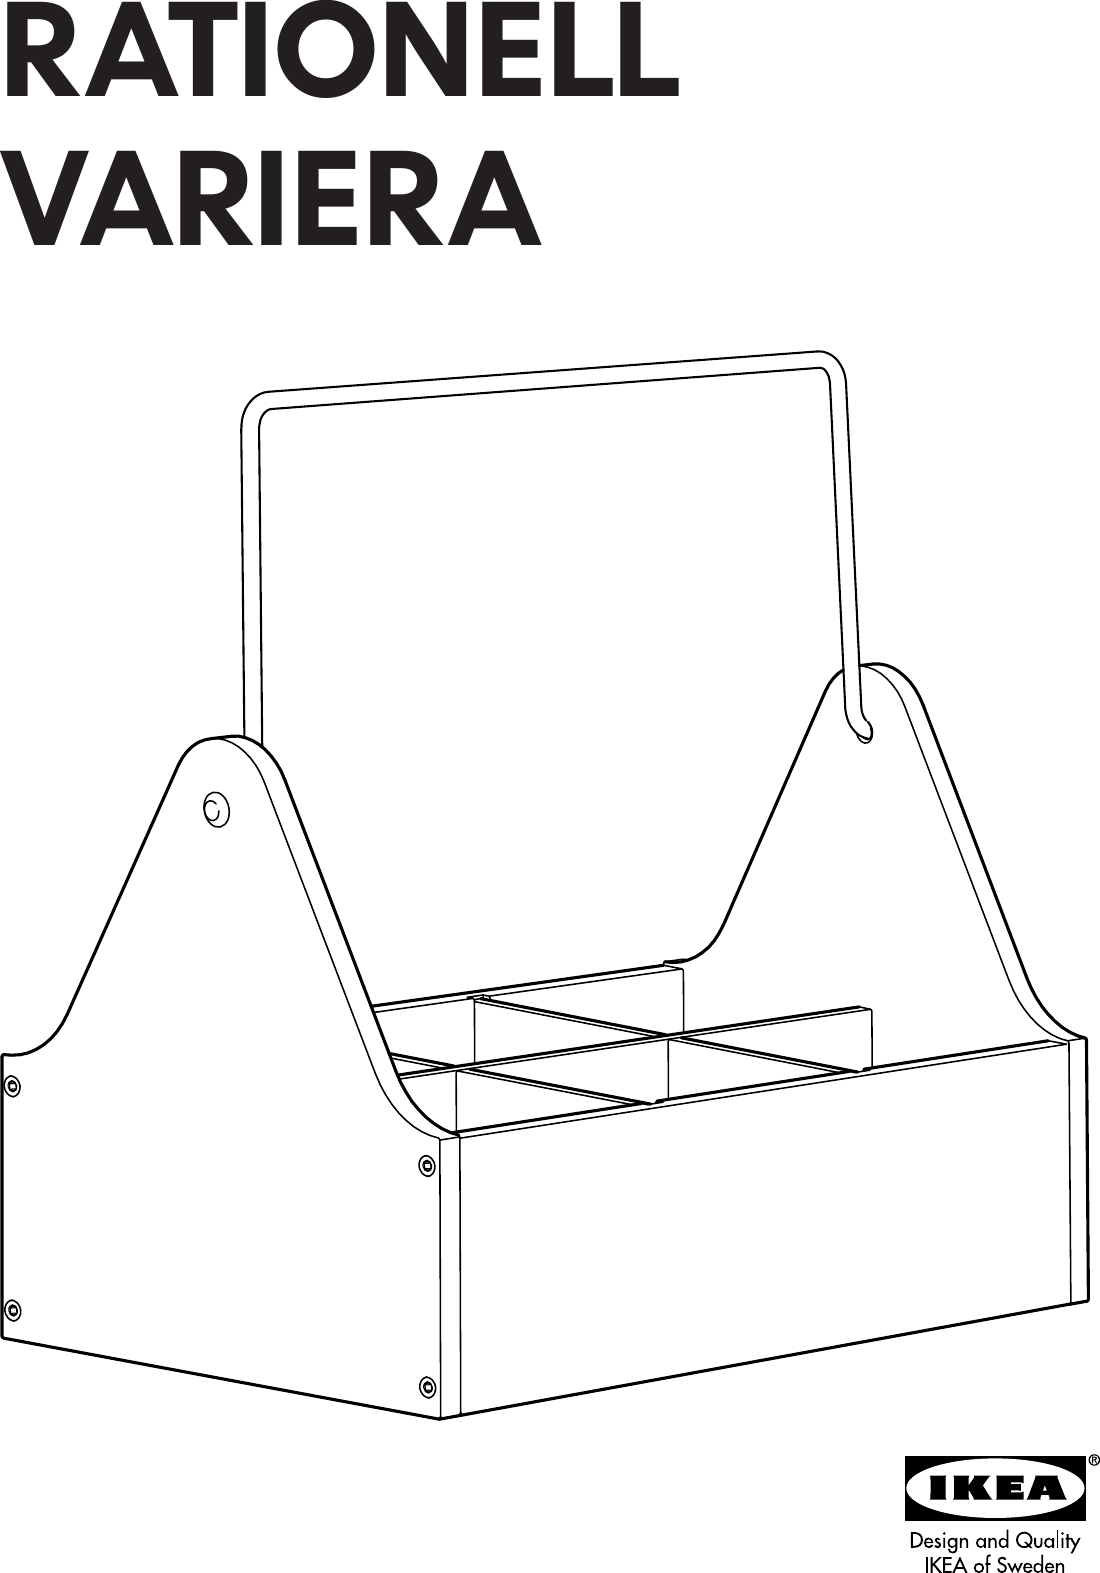 Ikea Rationell Variera Box Handle Assembly Instruction